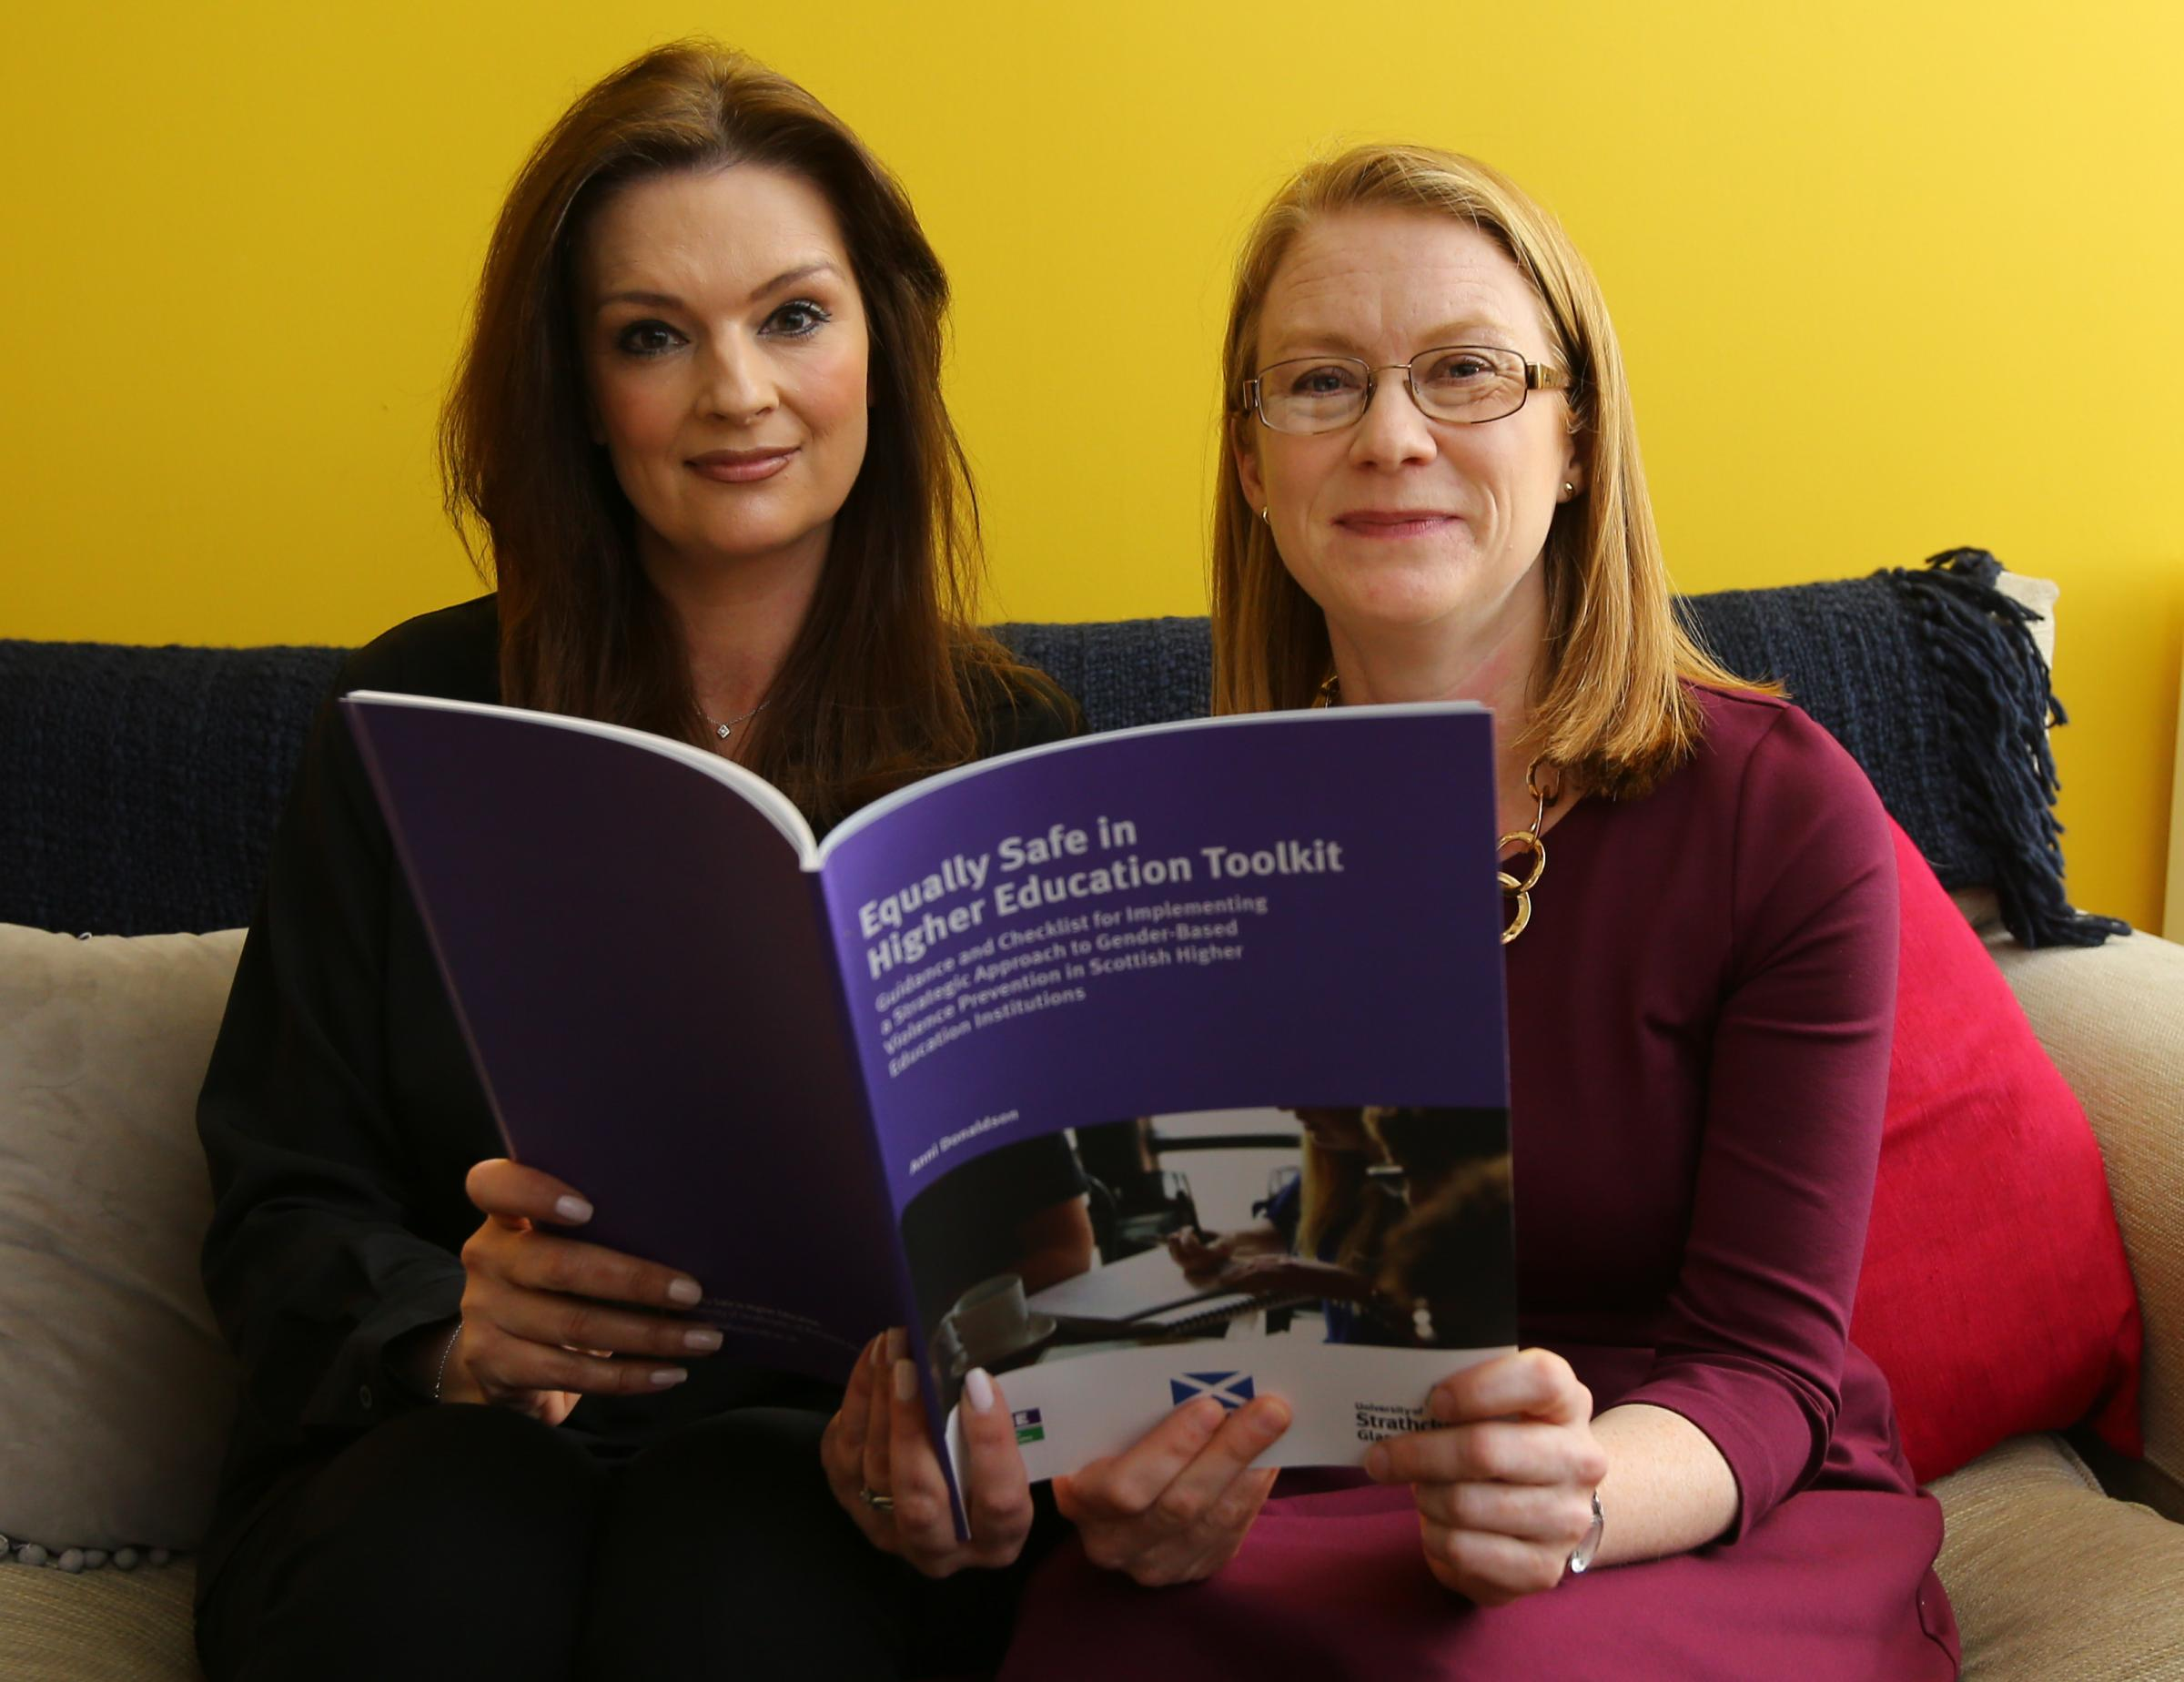 Fiona Drouet and Higher Education Minister Shirley-Anne Somerville at the launch of new guidance for universities on violence against women. Photograph by Colin Mearns